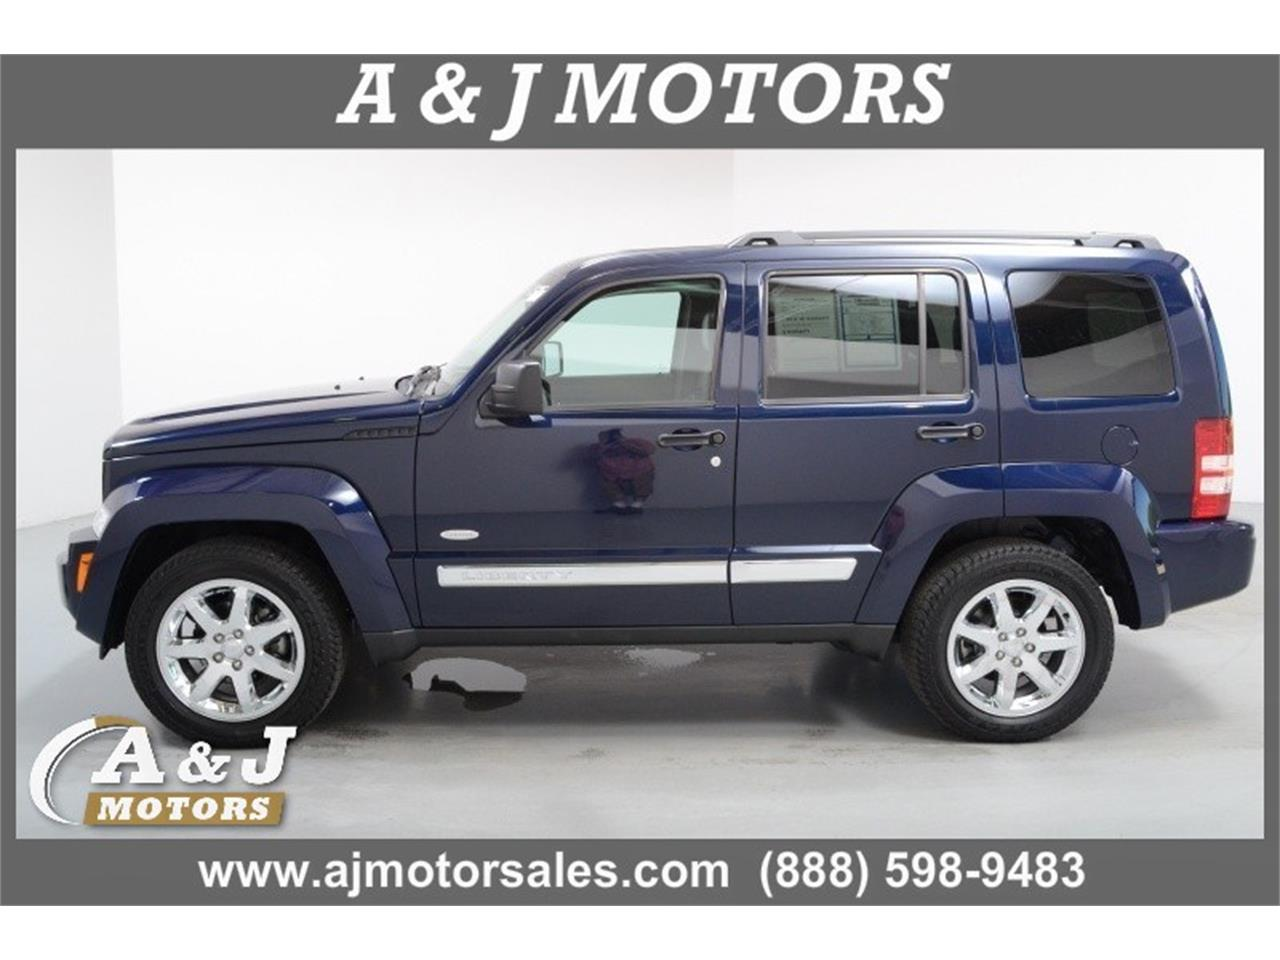 Large Picture of '12 Jeep Liberty - $14,999.00 Offered by A & J Motors - MOD3